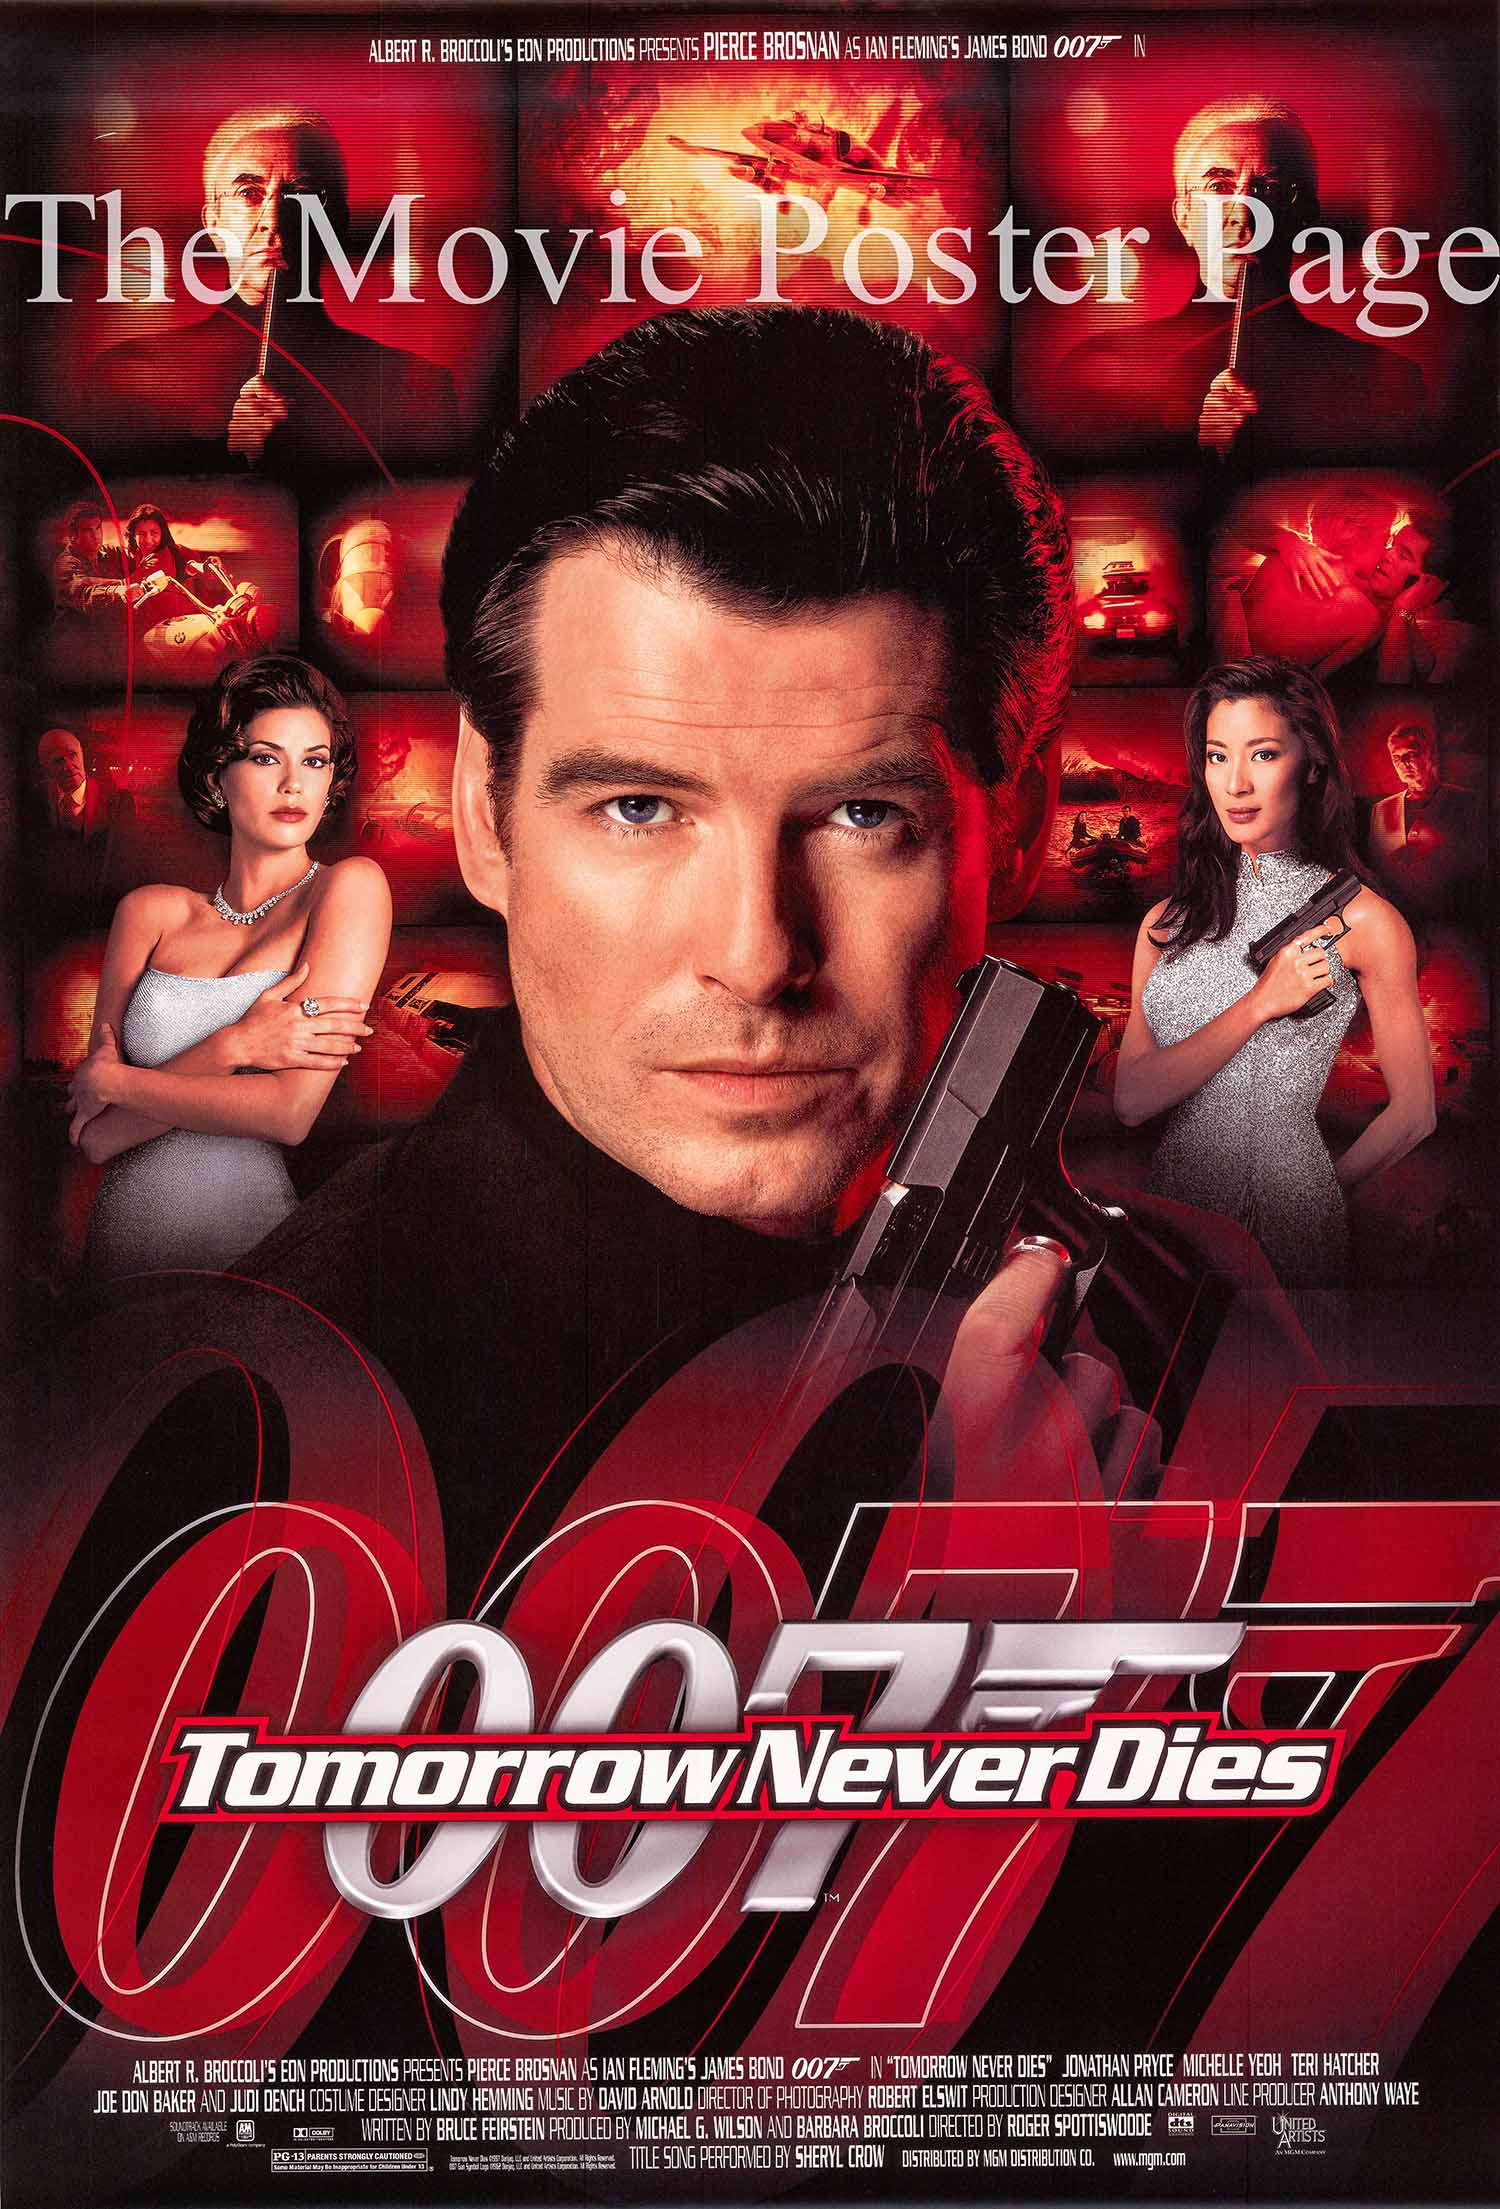 Pictured is a US promotional poster for the 1997 Roger Spotiswoode film Tomorrow Never Dies starring Pierce Brosnan as James Bond.